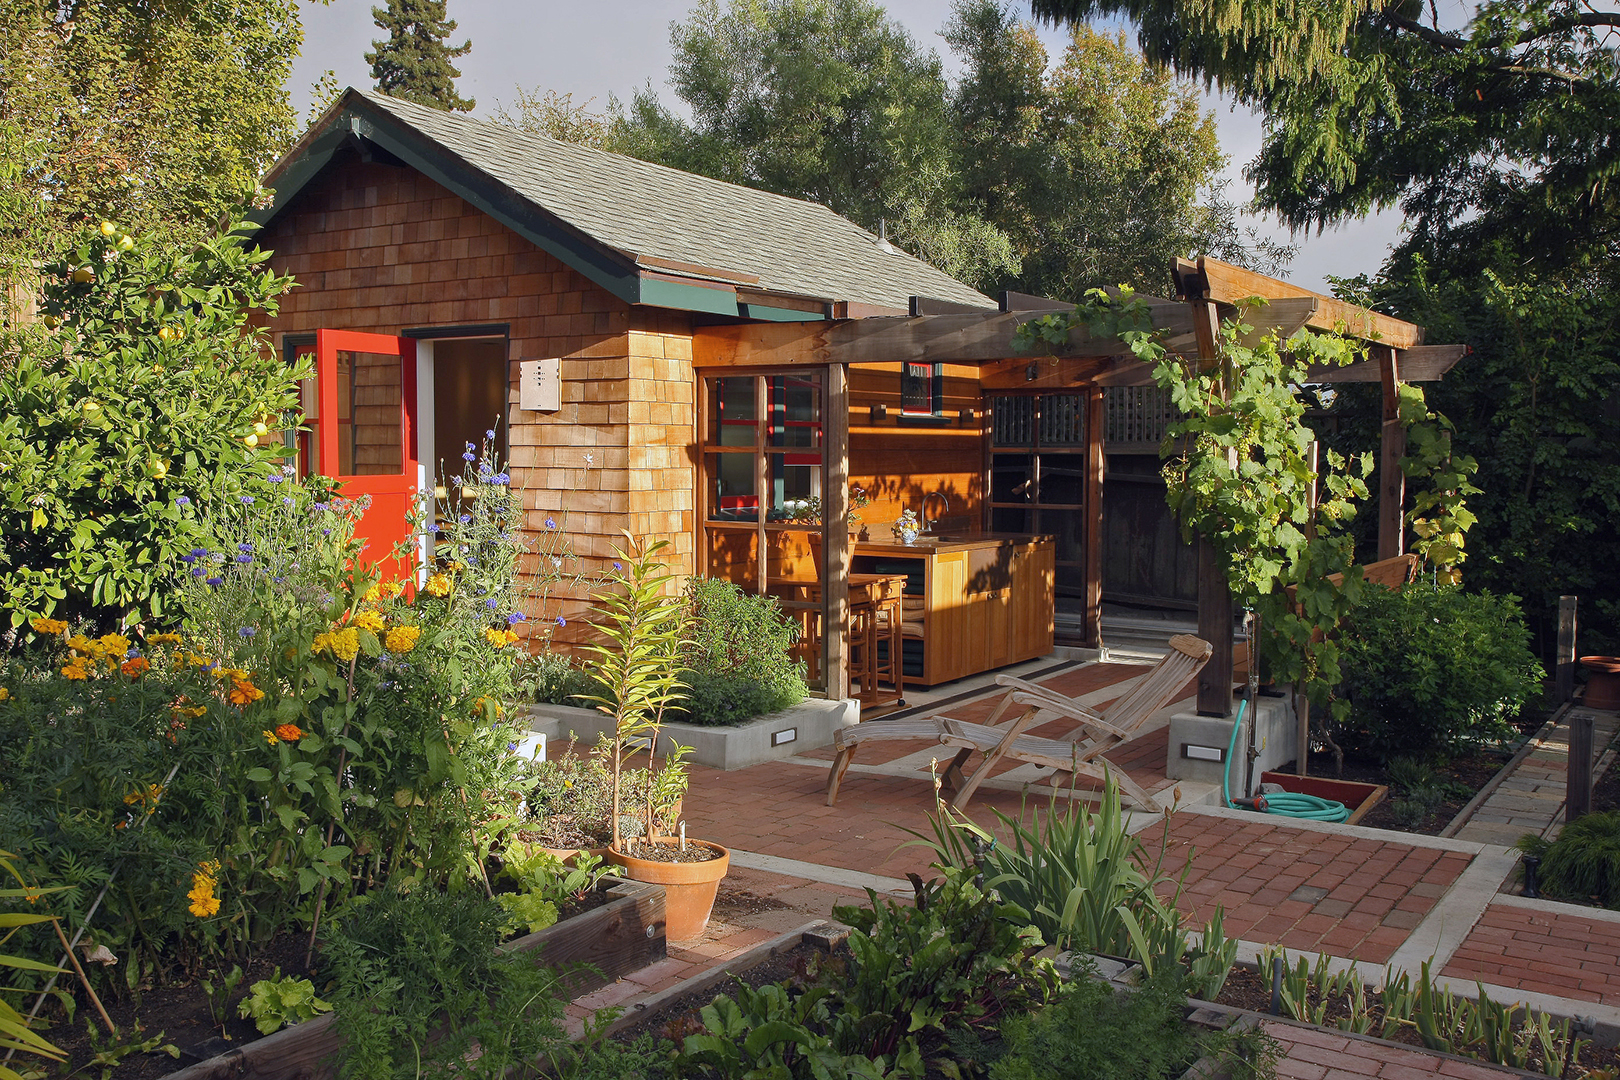 Backyard Cottages - Sogno Design Group on Bungalow Backyard Ideas id=96499